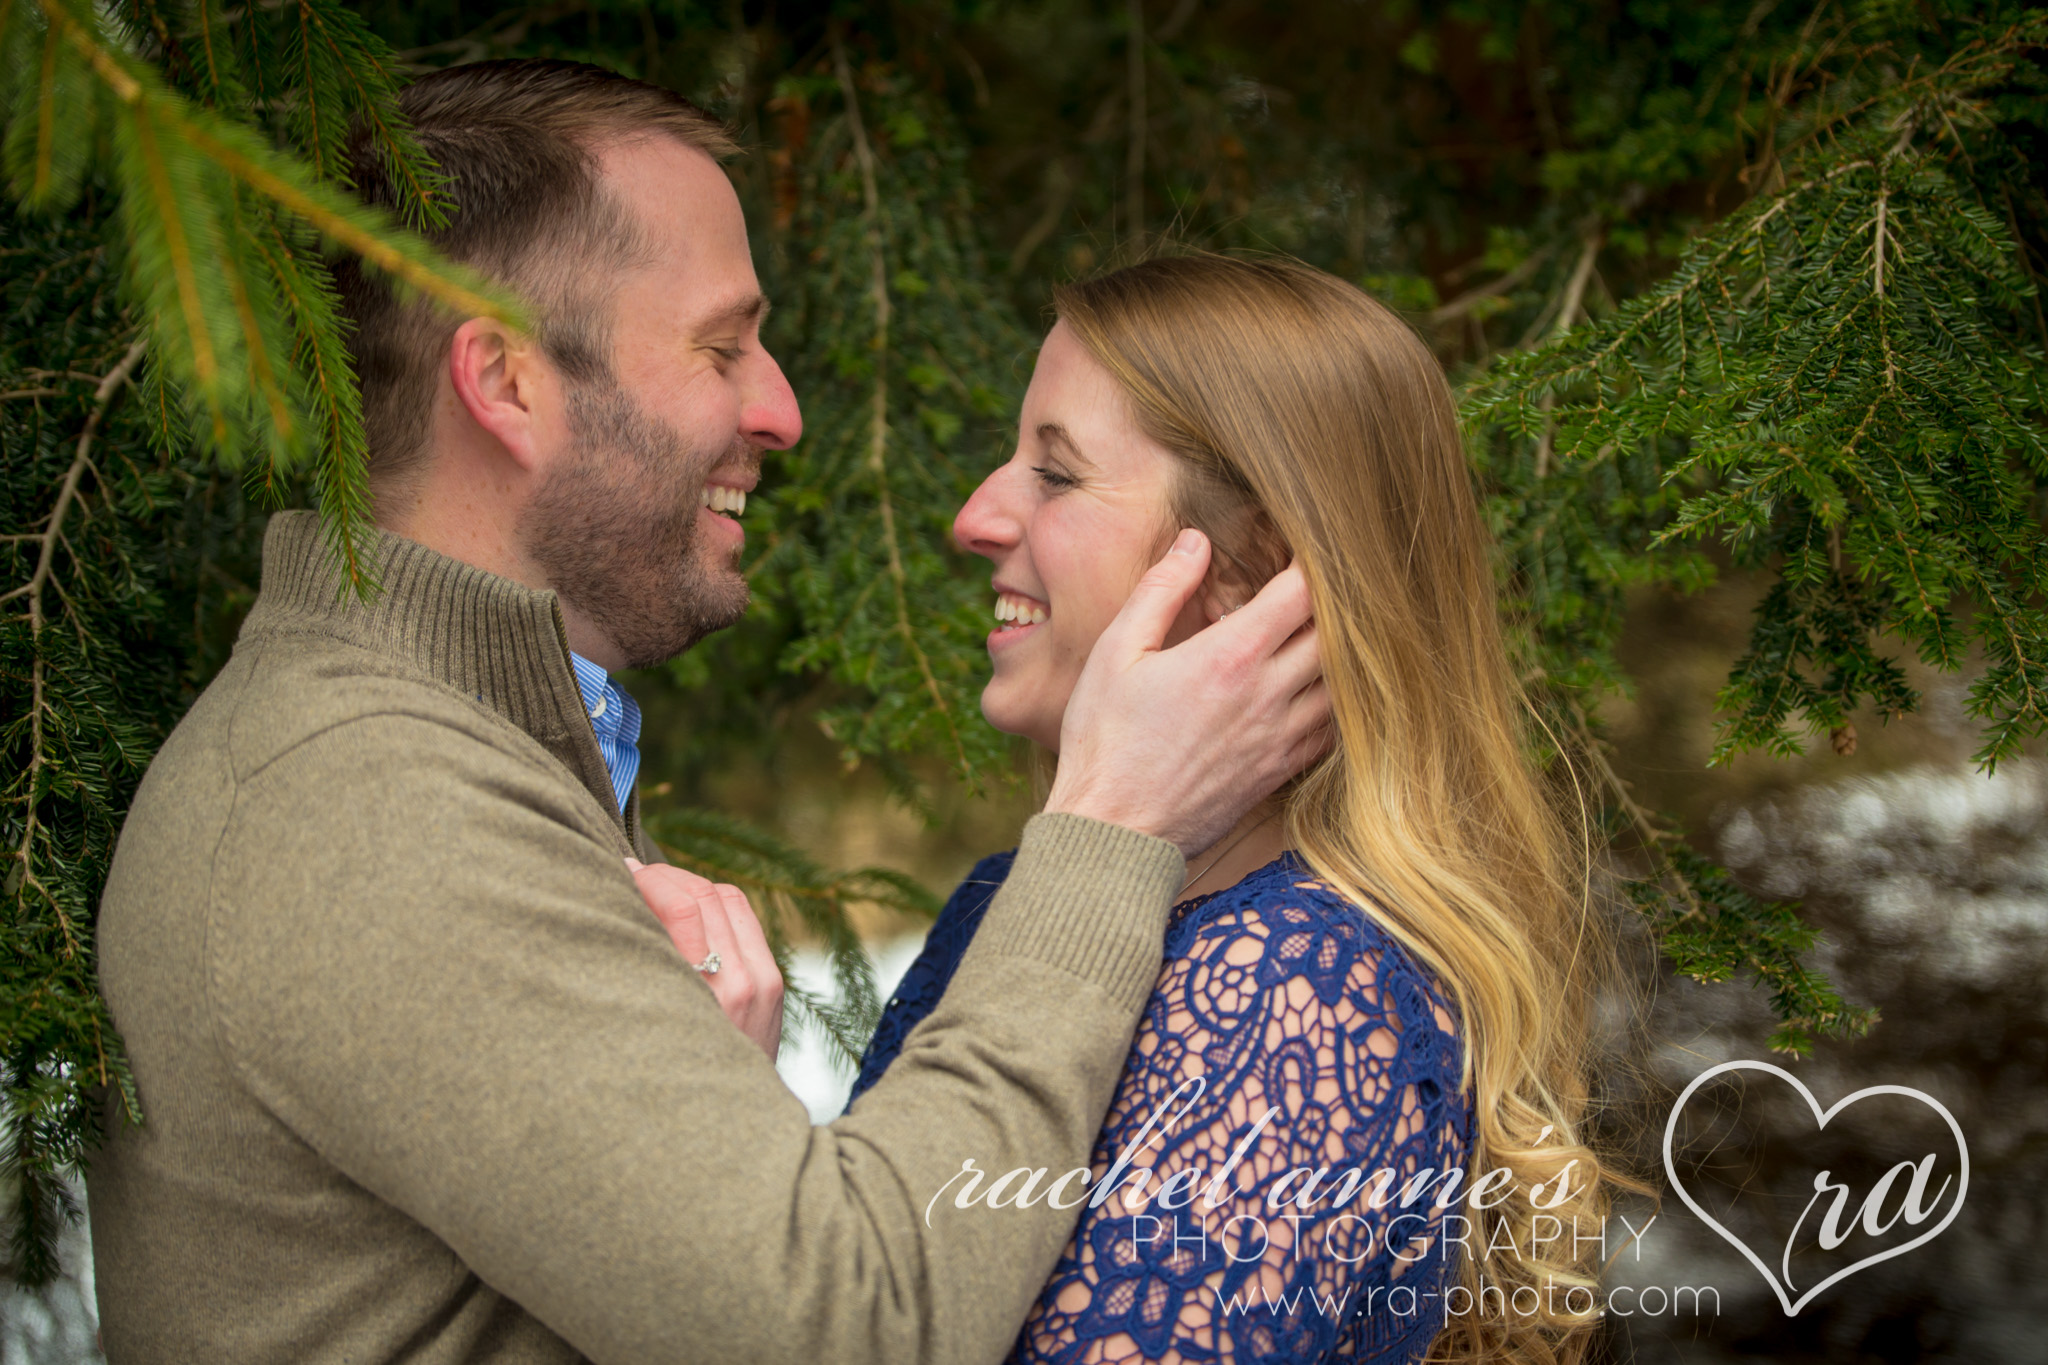 076-JKM-DUBOIS-PA-ENGAGEMENT-PHOTOGRAPHY.jpg